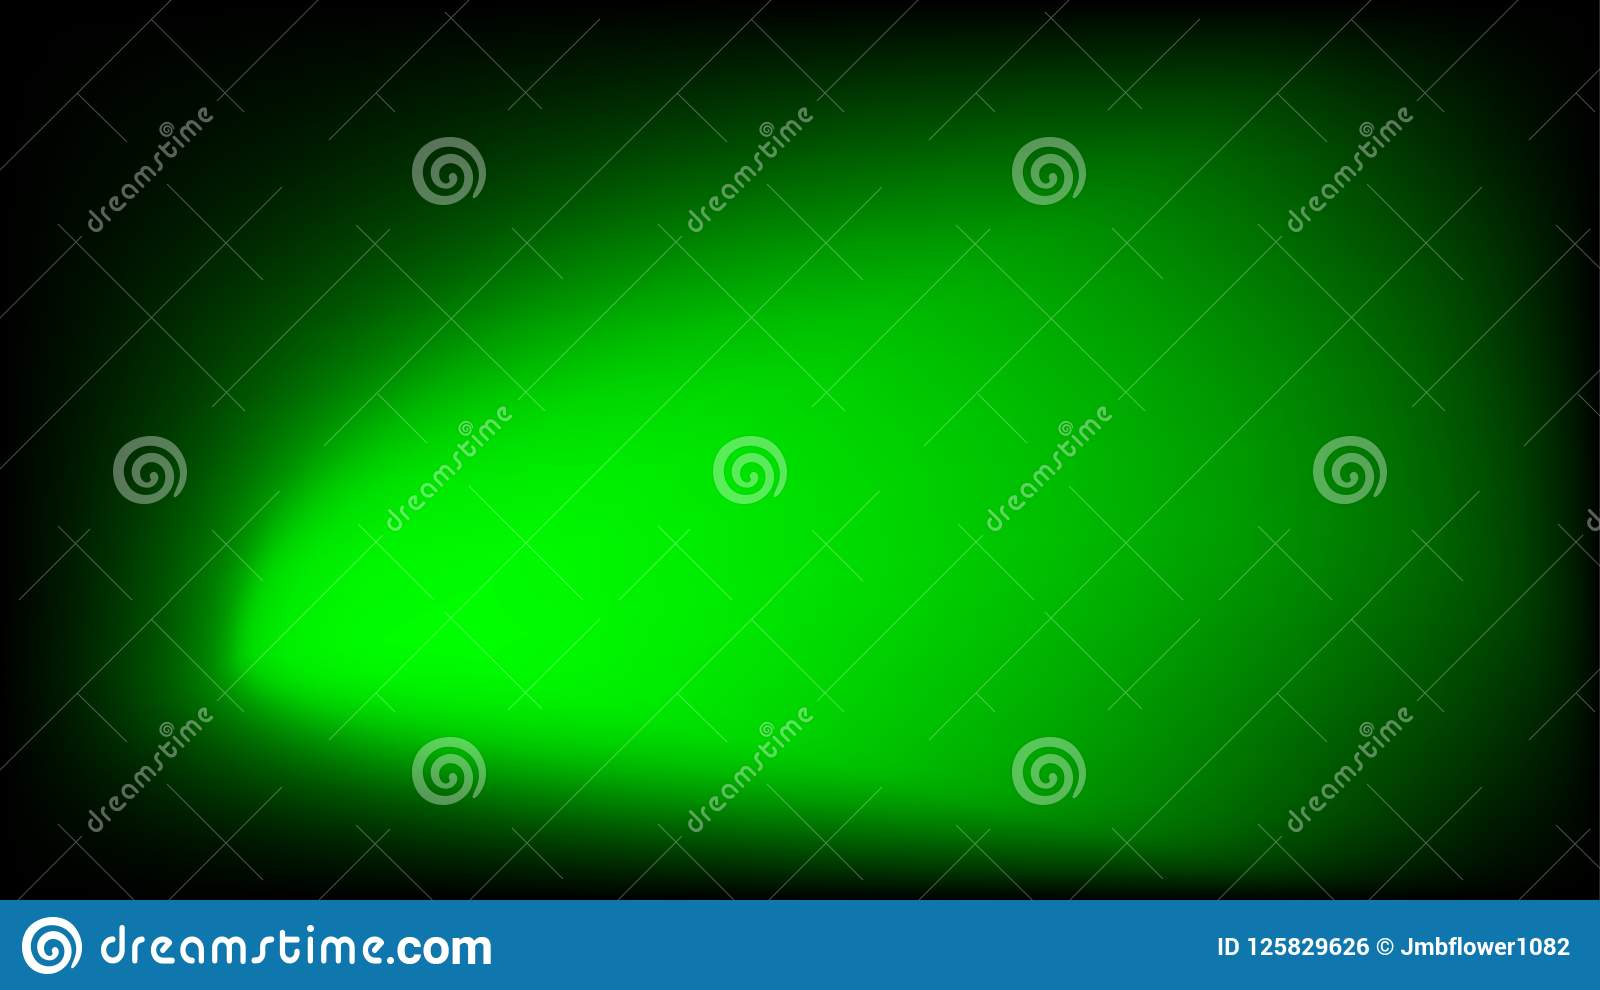 Green And Black Abstract Vector Background Stock Vector